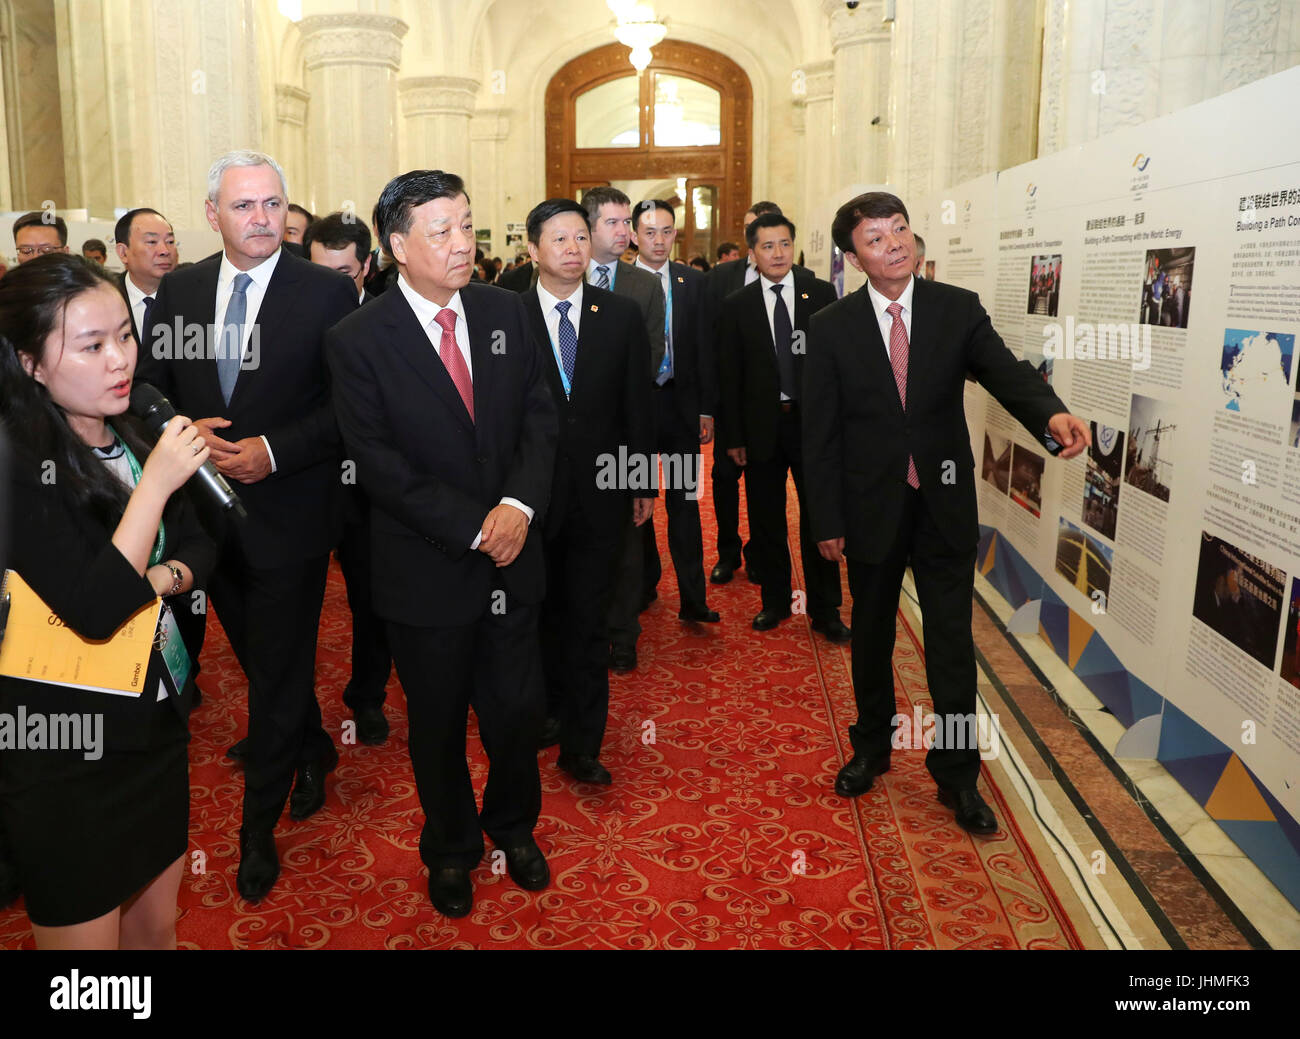 Bucharest, Romania. 14th July, 2017. Liu Yunshan, a member of the Standing Committee of the Political Bureau of - Stock Image